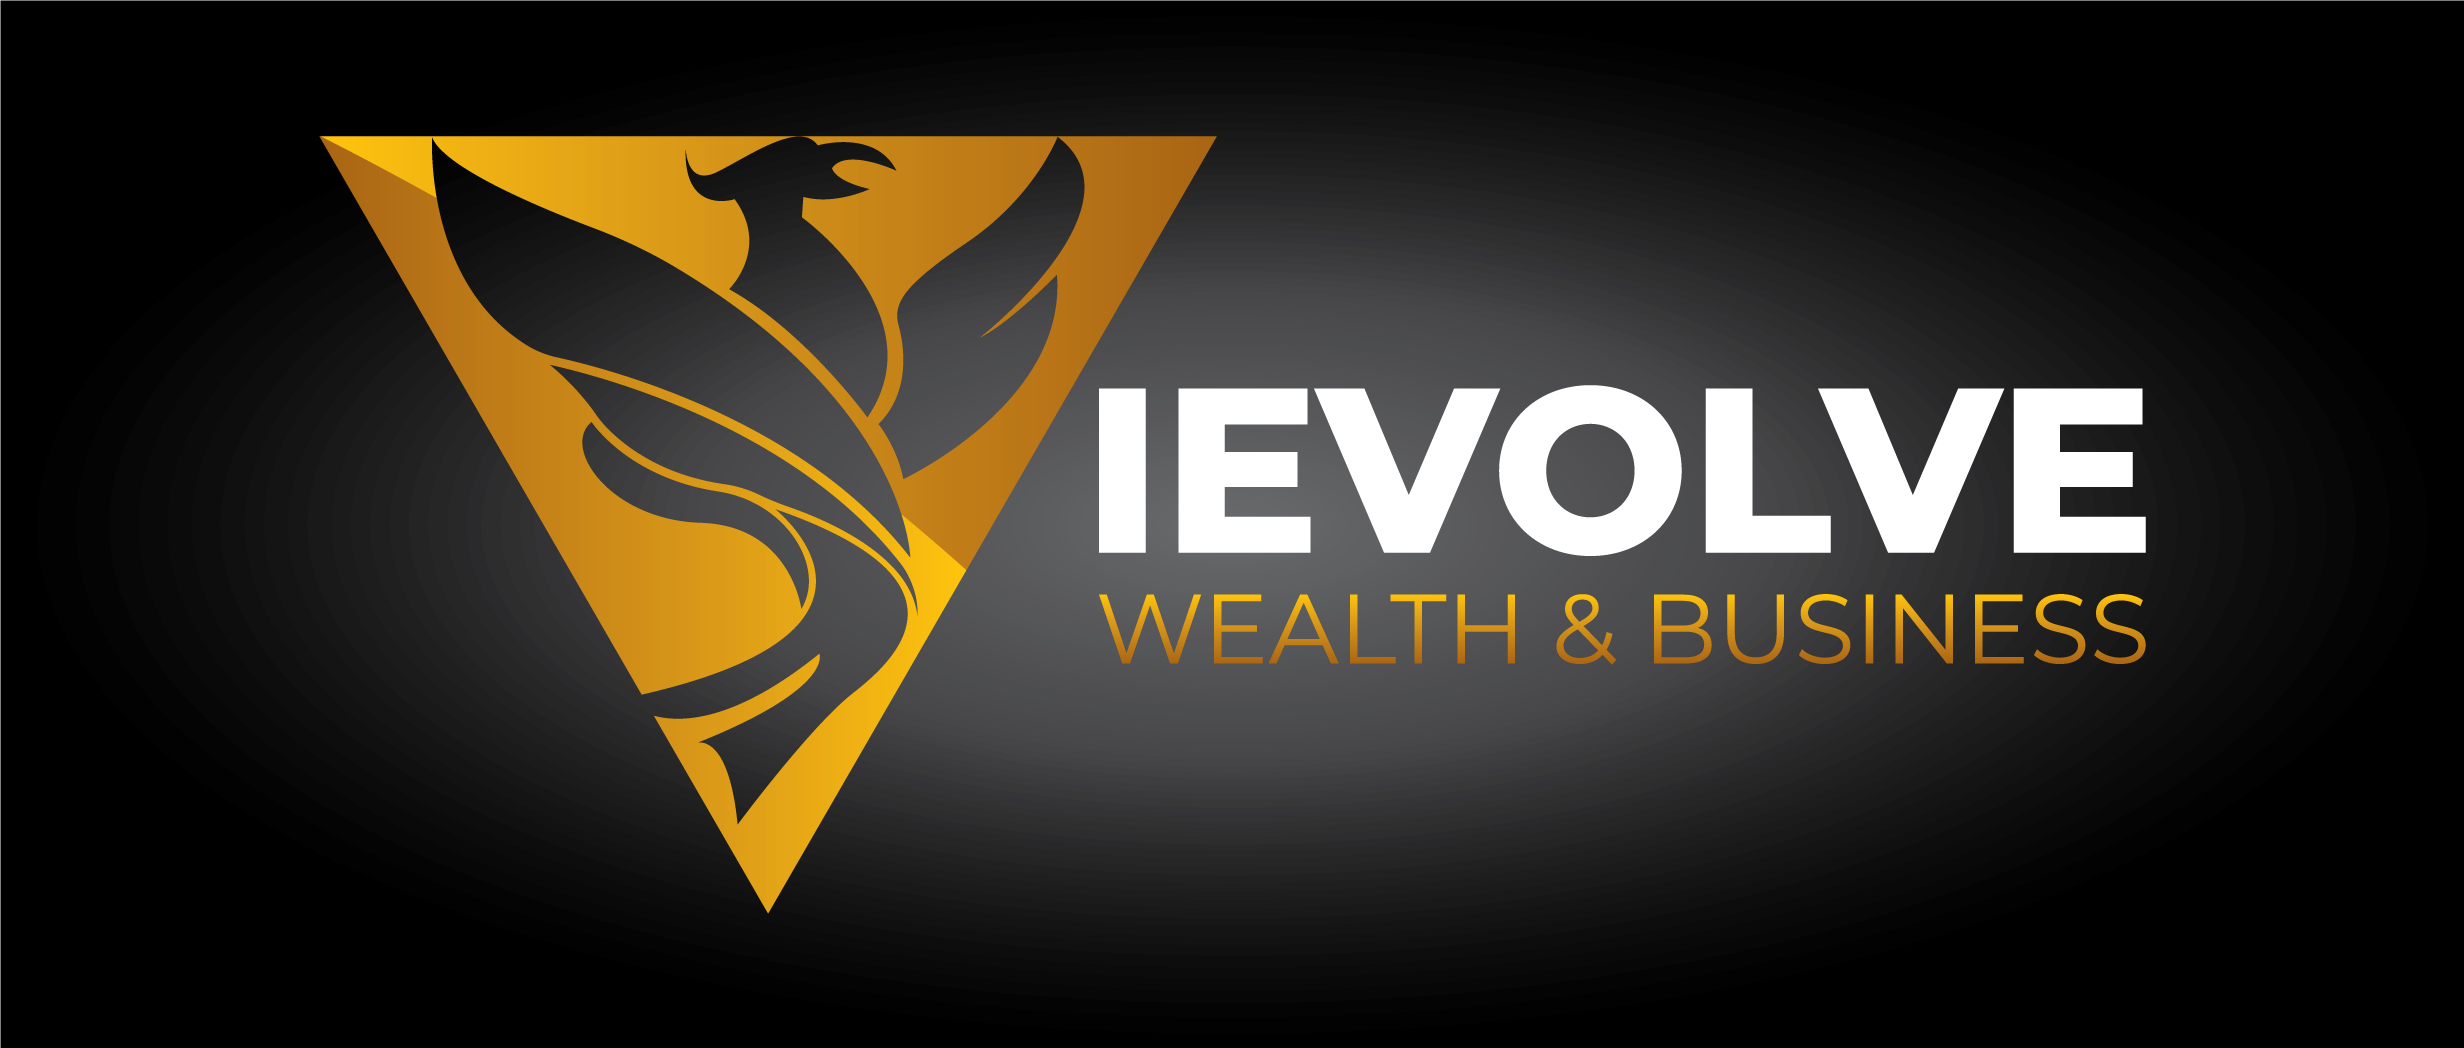 ONLINE BUSINESS AND INVESTING PLATFORM | IEVOLVE WEALTH